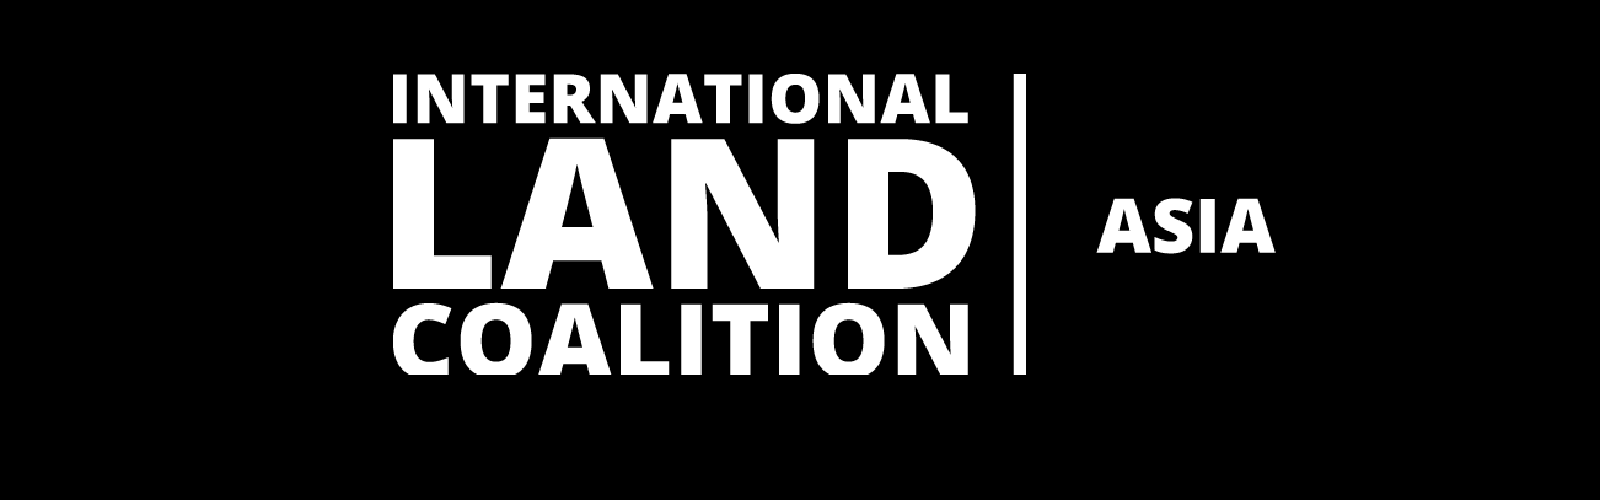 International land coaliton Asia